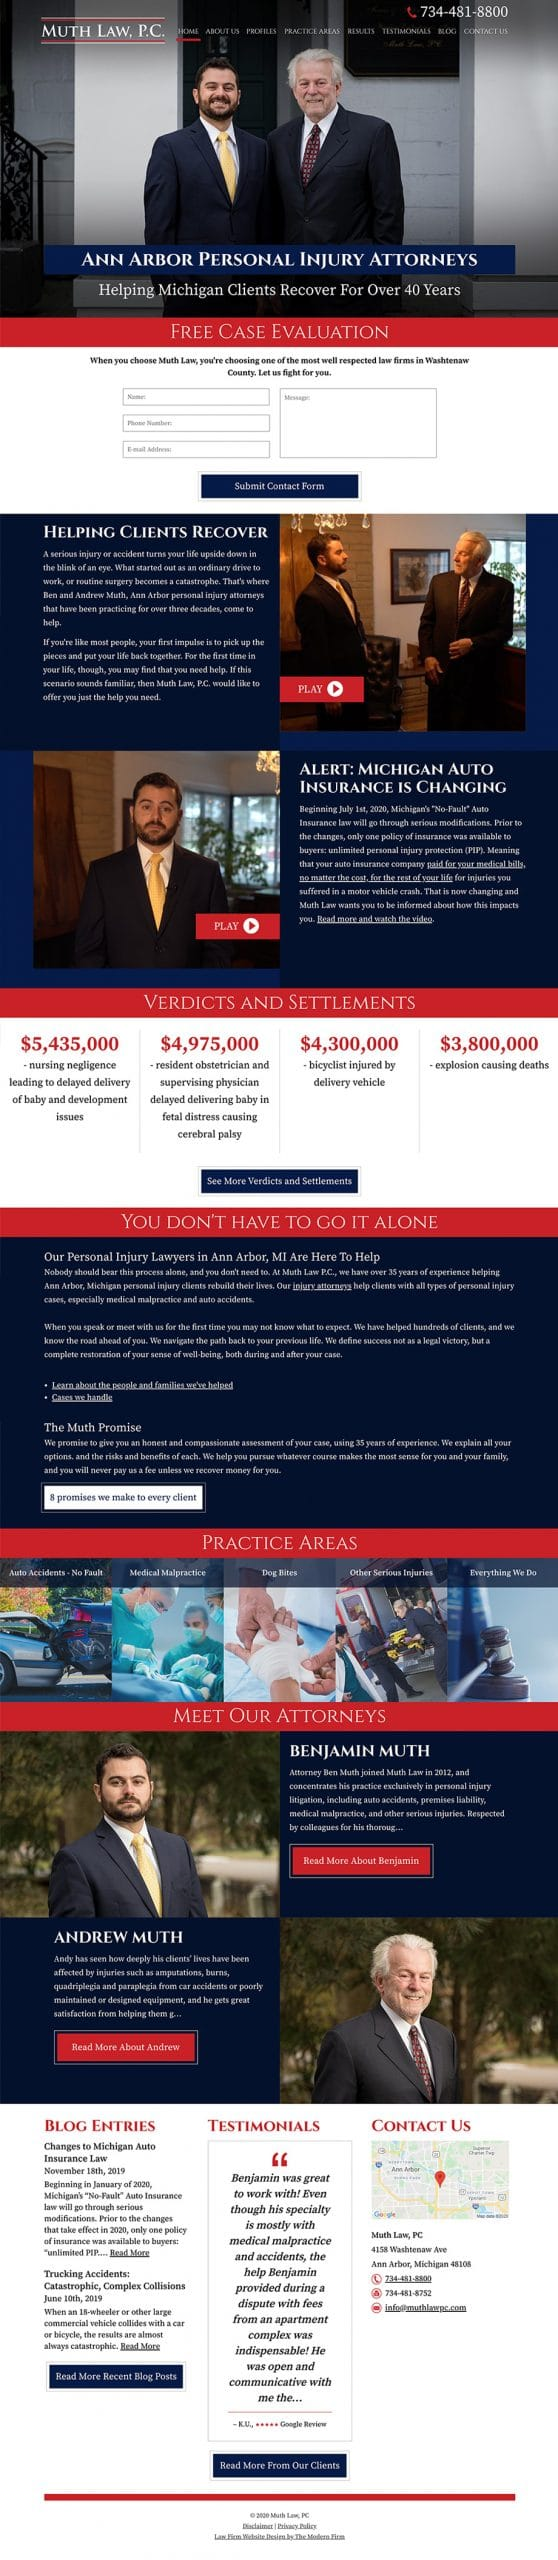 Law Firm Website Design for Muth Law, PC